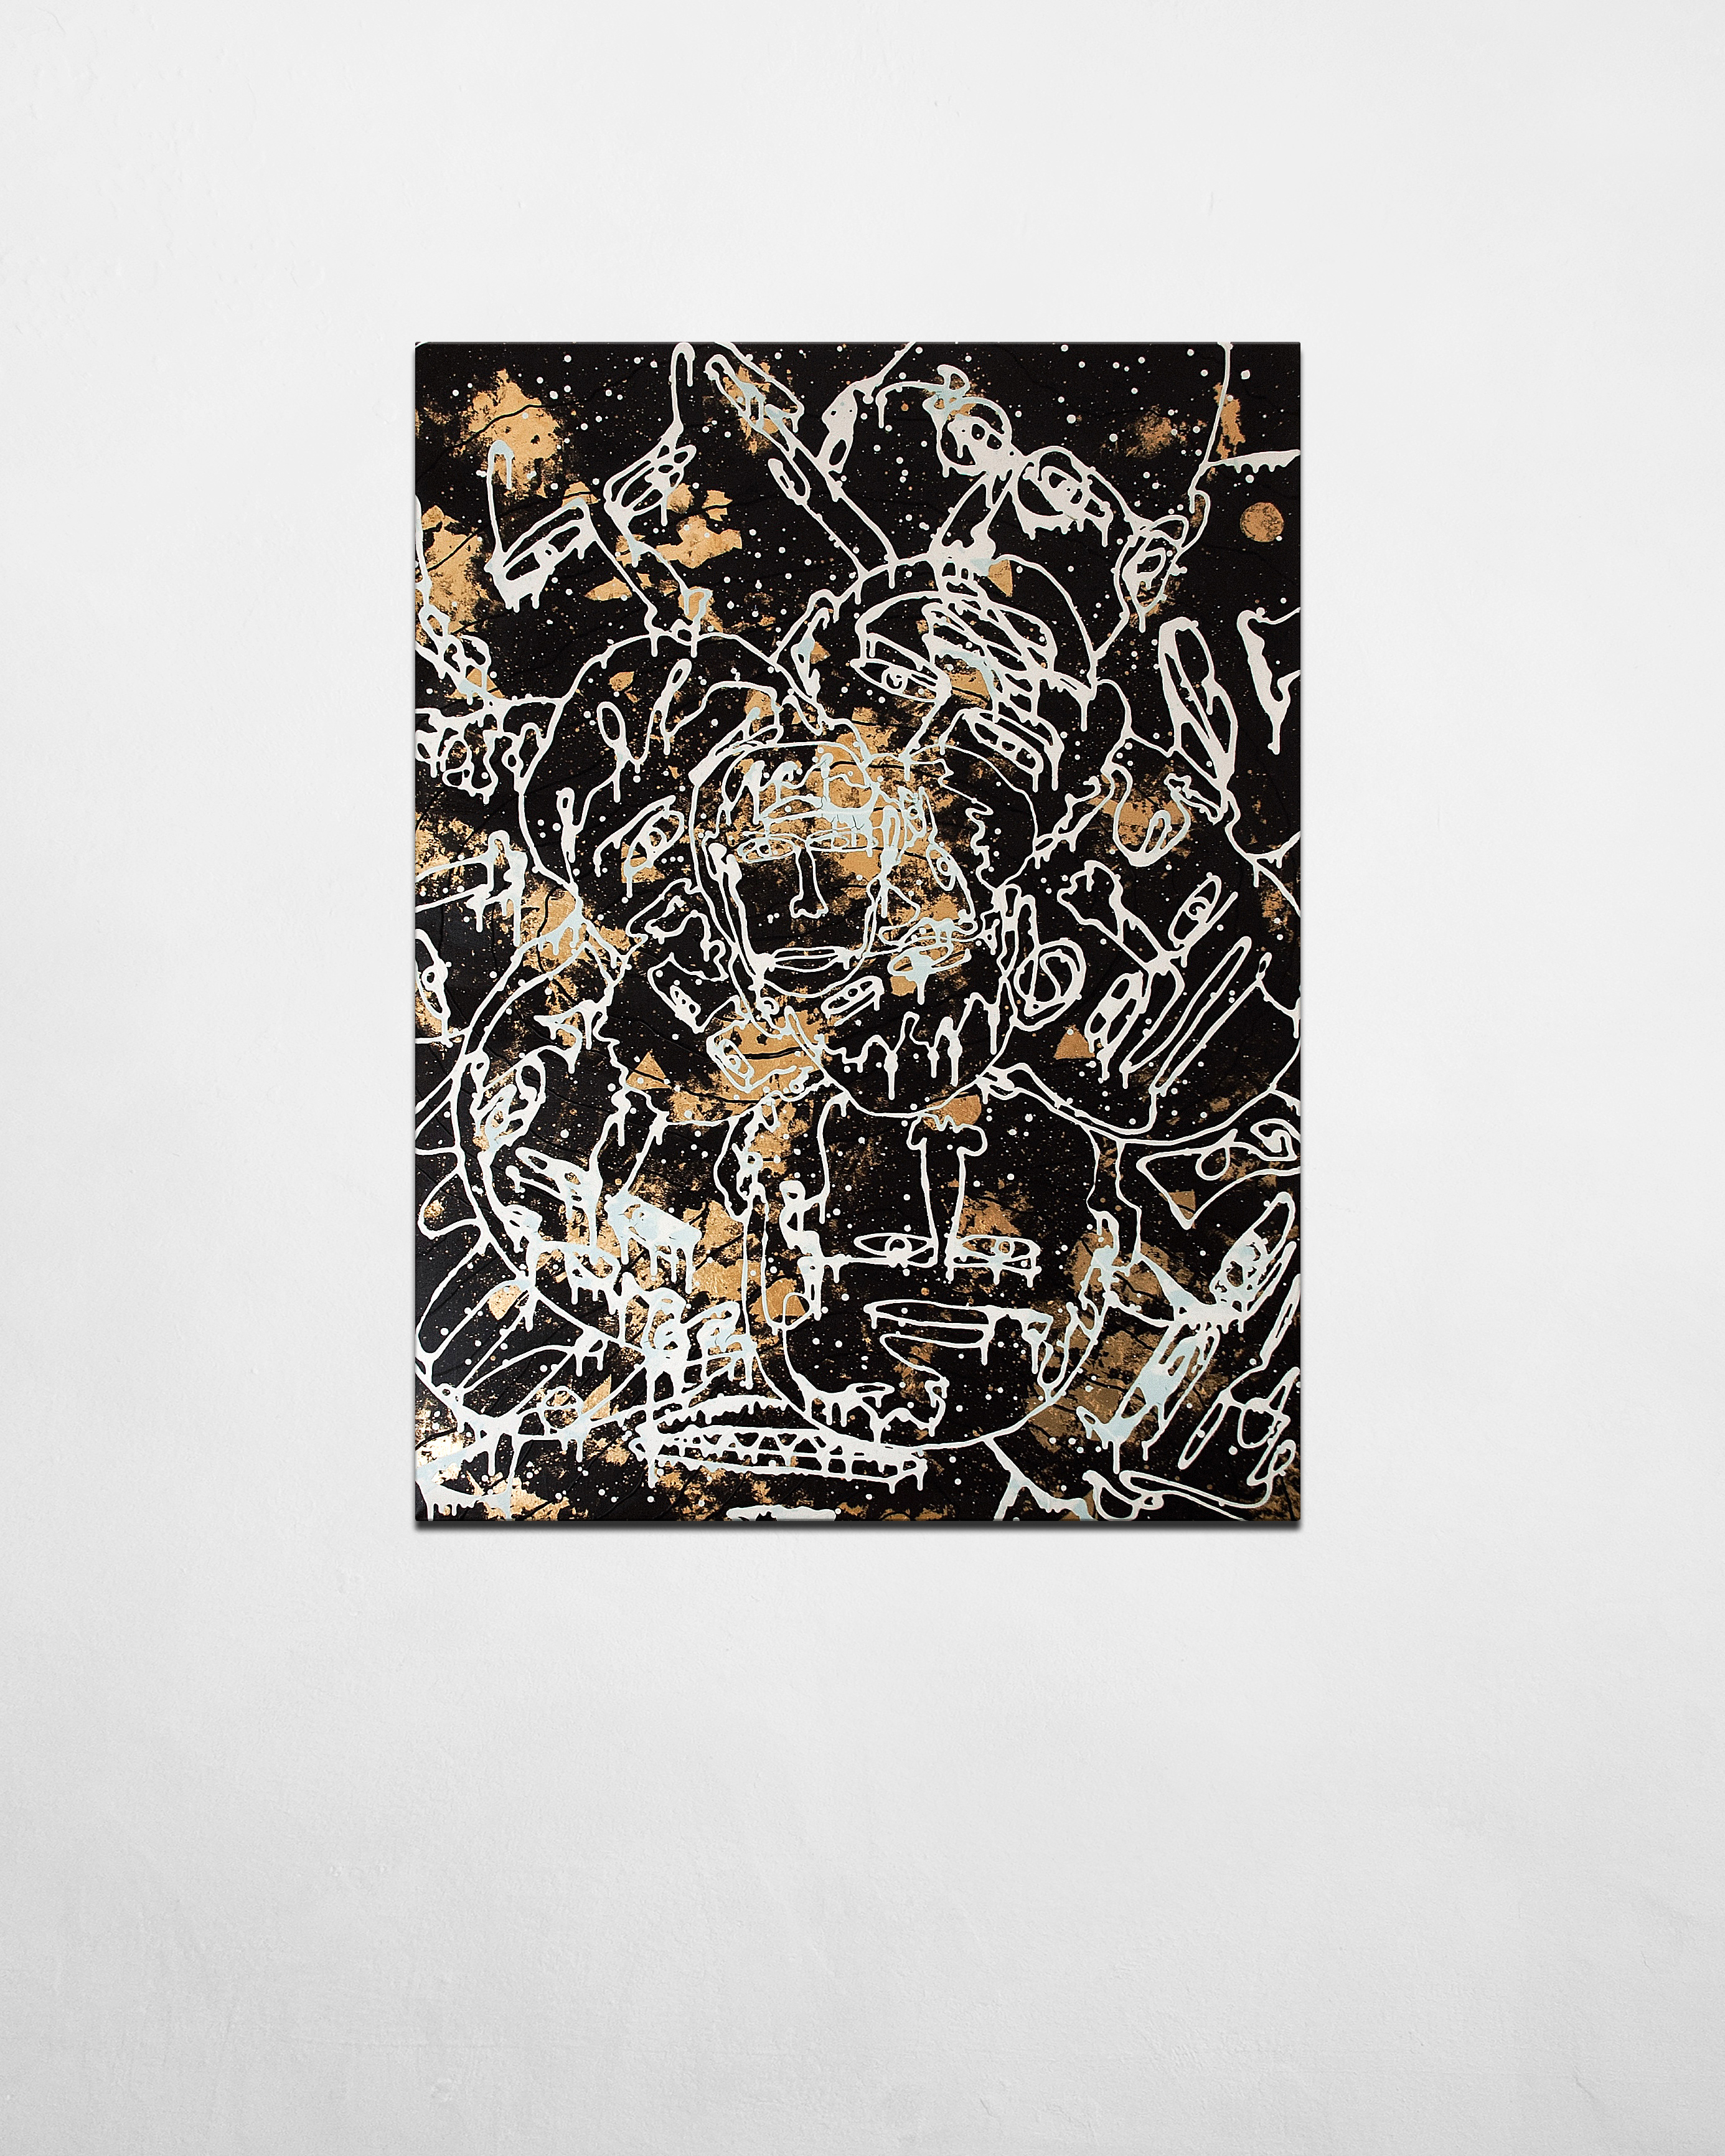 Gold that is deep inside me - contemporary artwork - gold and black